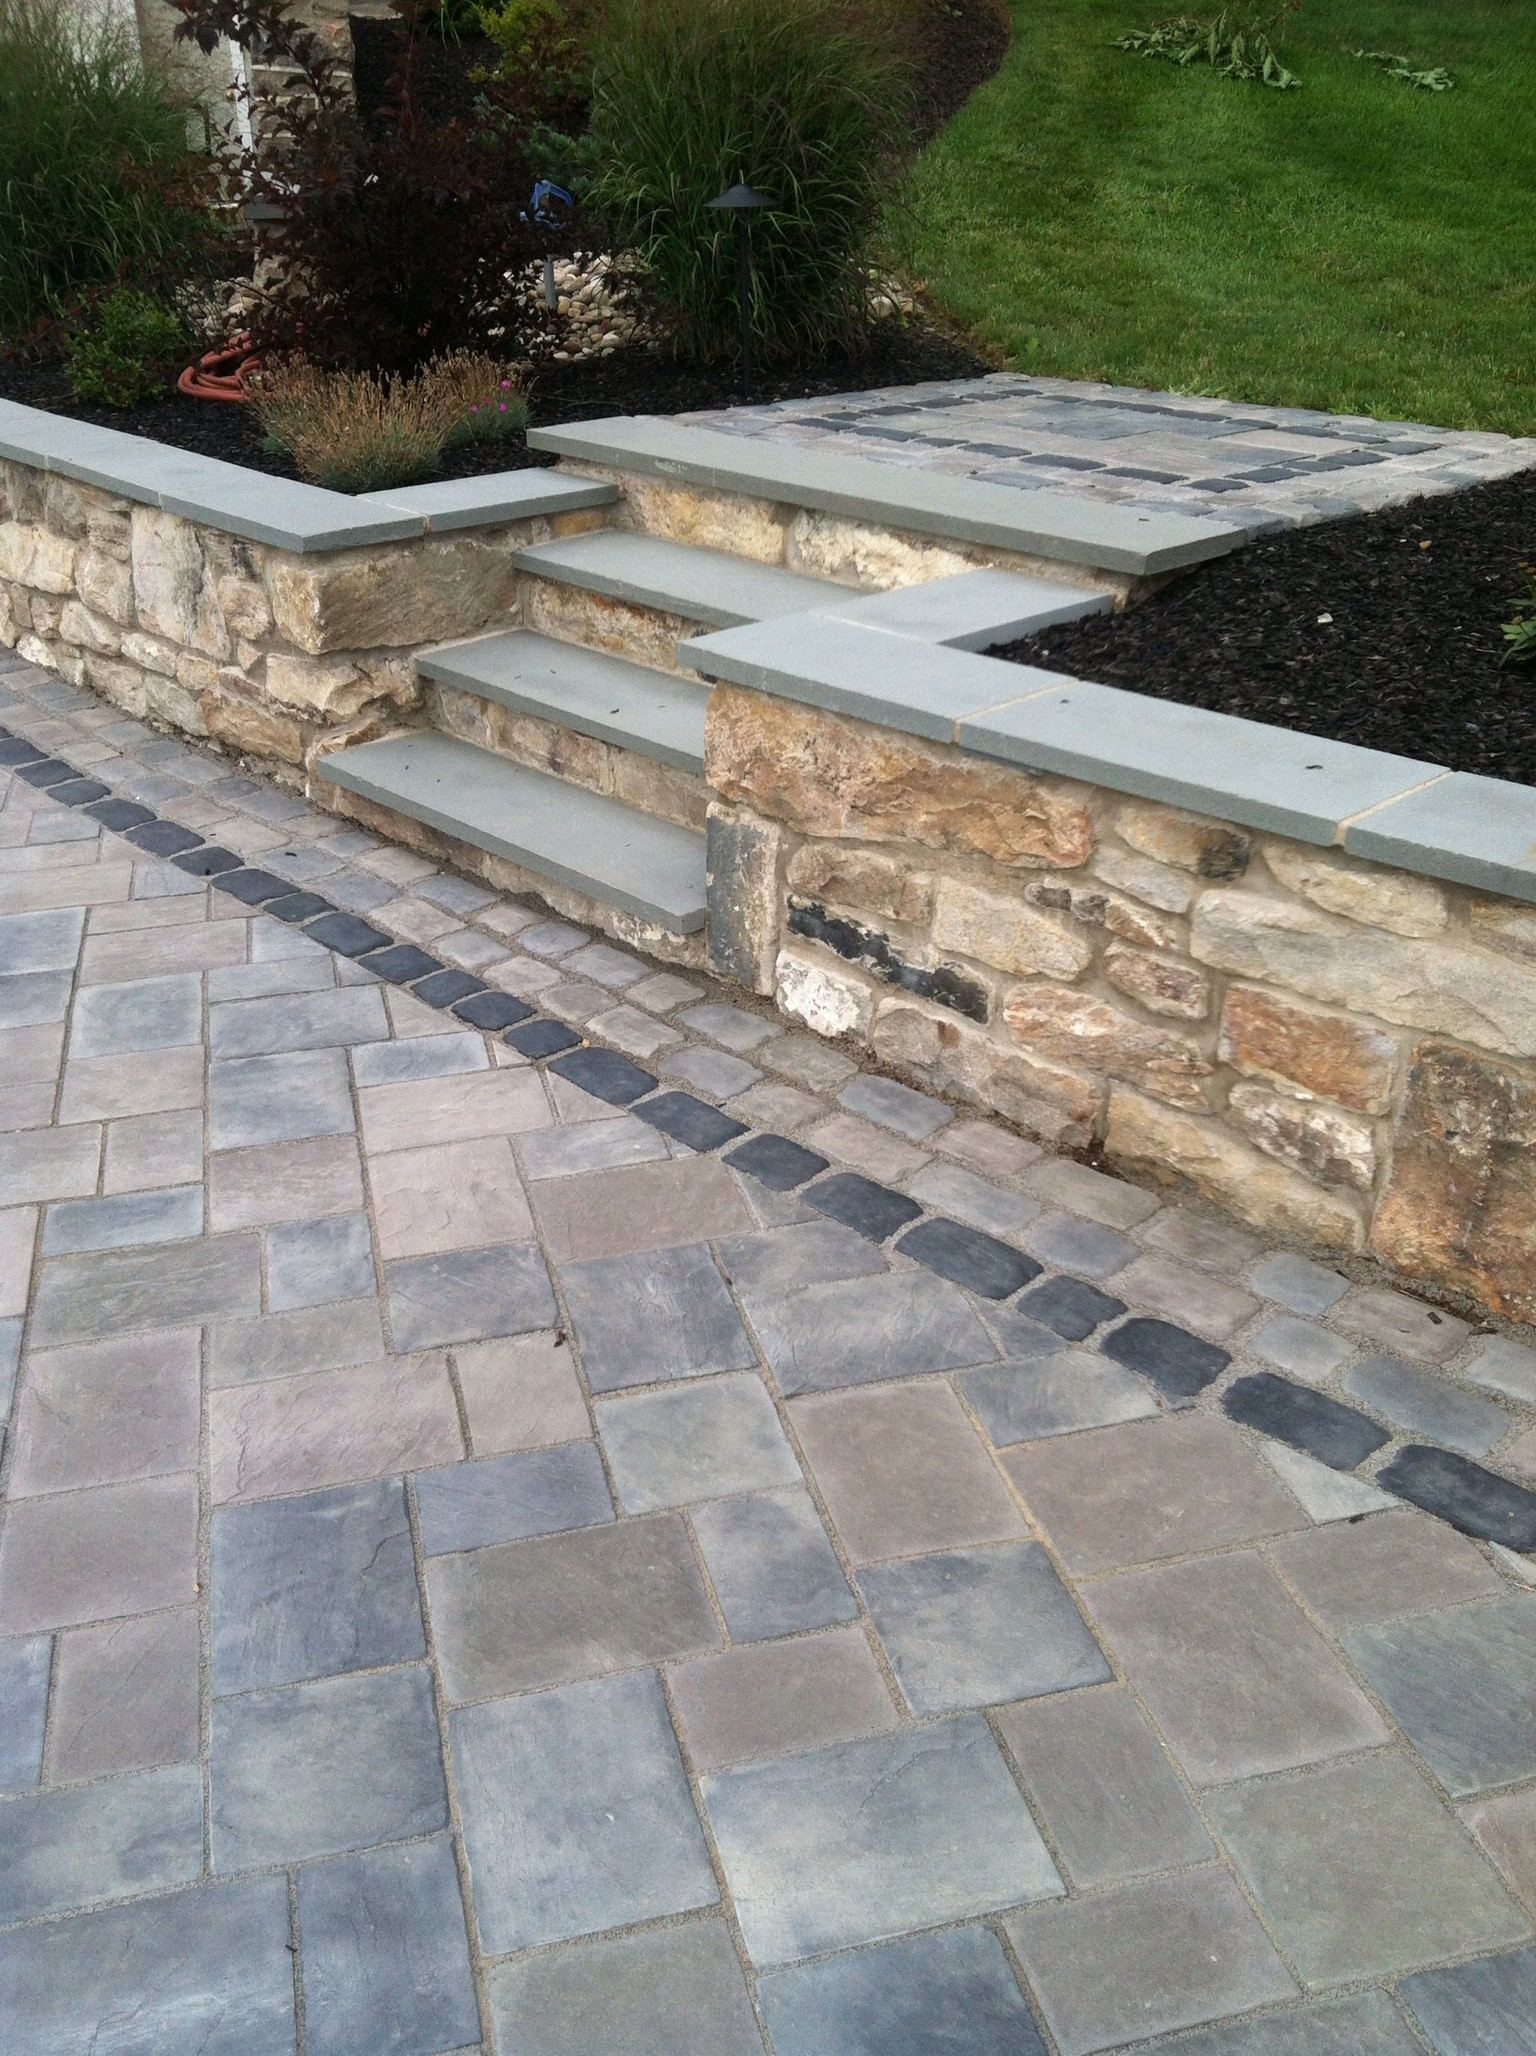 Professional landscaping pavers in Schuylkill County, PA